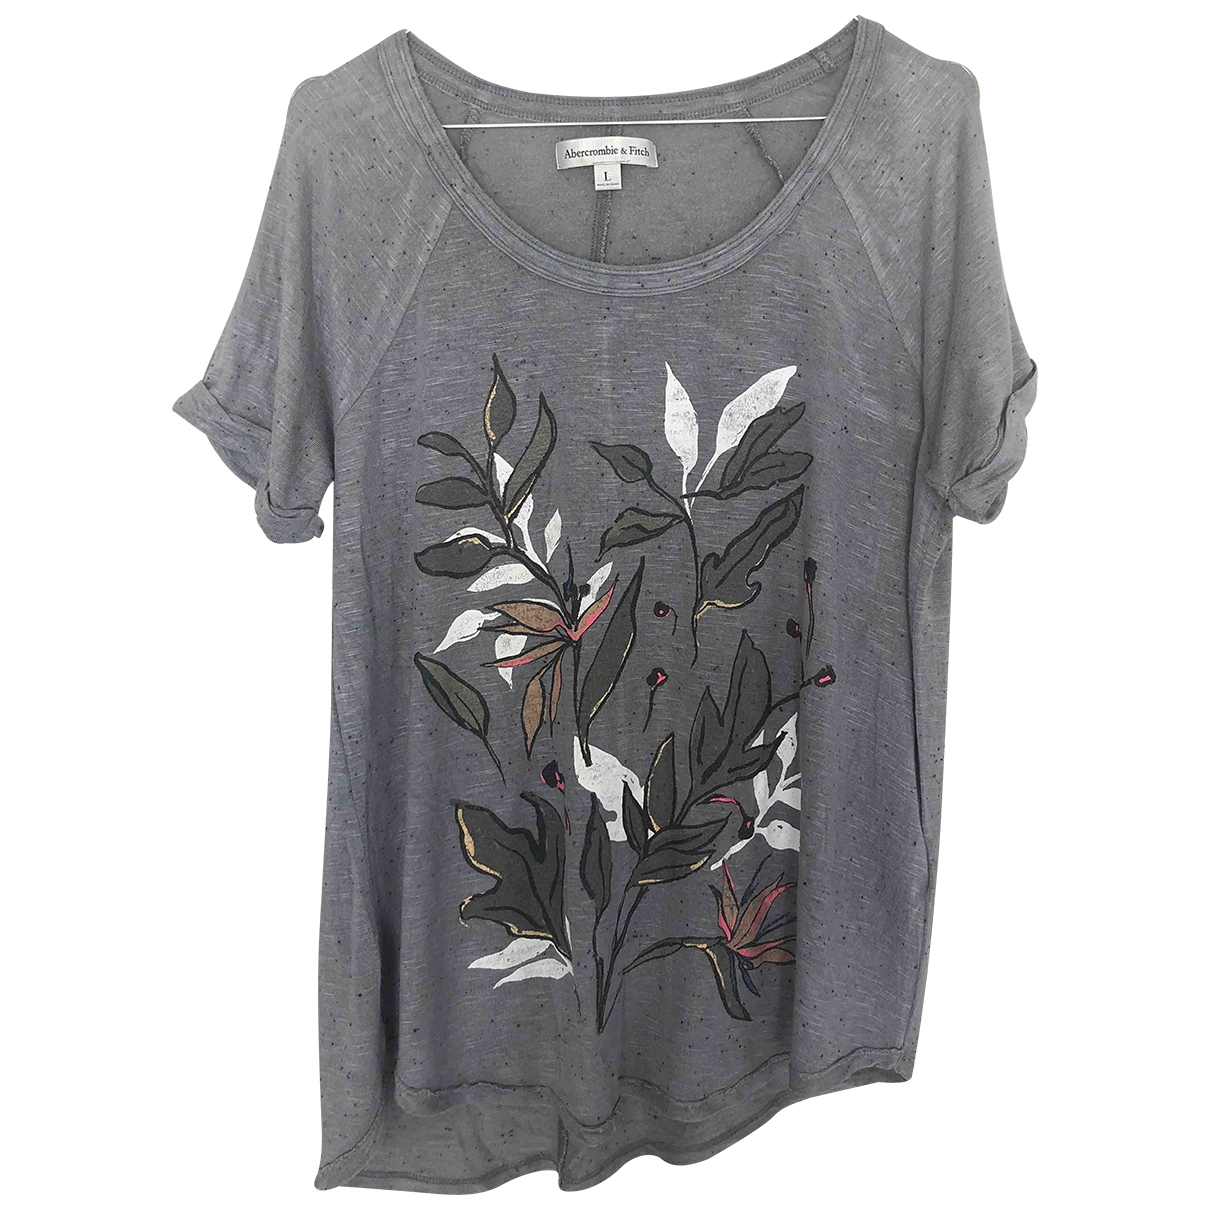 Abercrombie & Fitch - Top   pour femme - anthracite